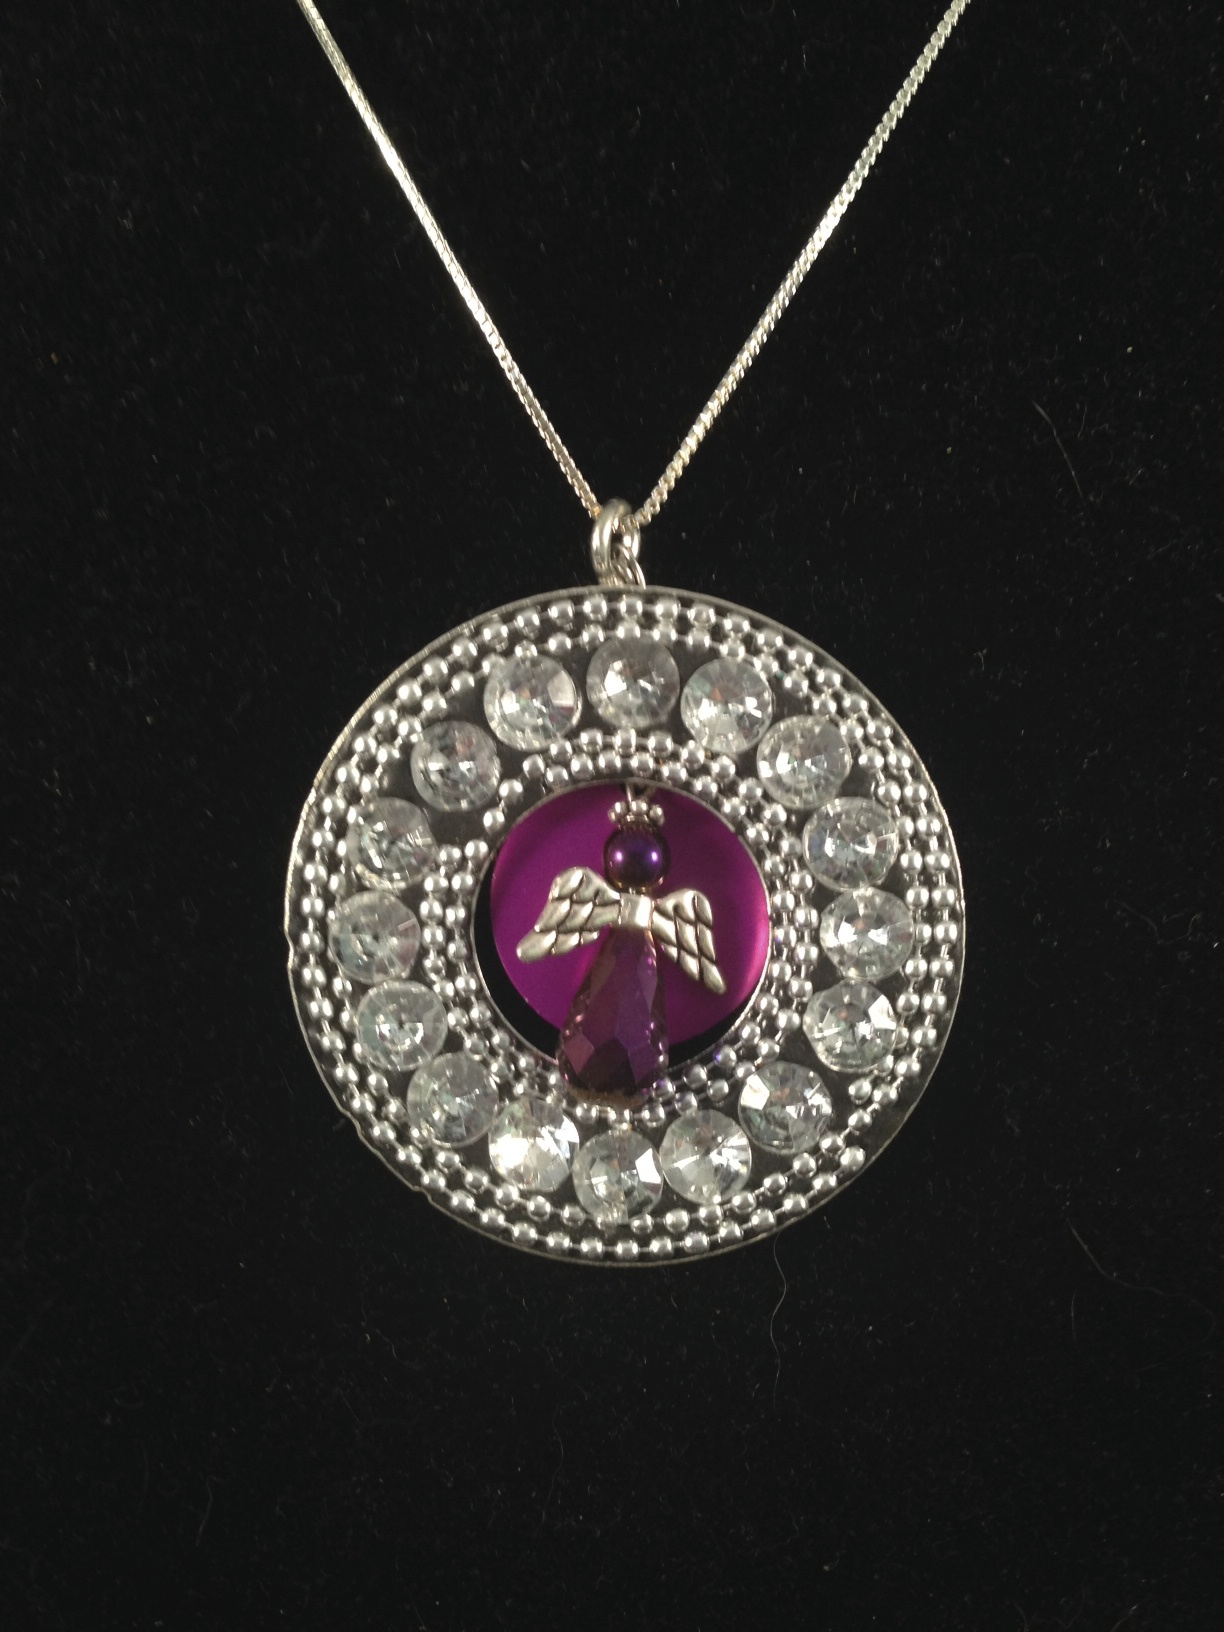 Angel w/Big Halo Necklace & Purple Energy Disk